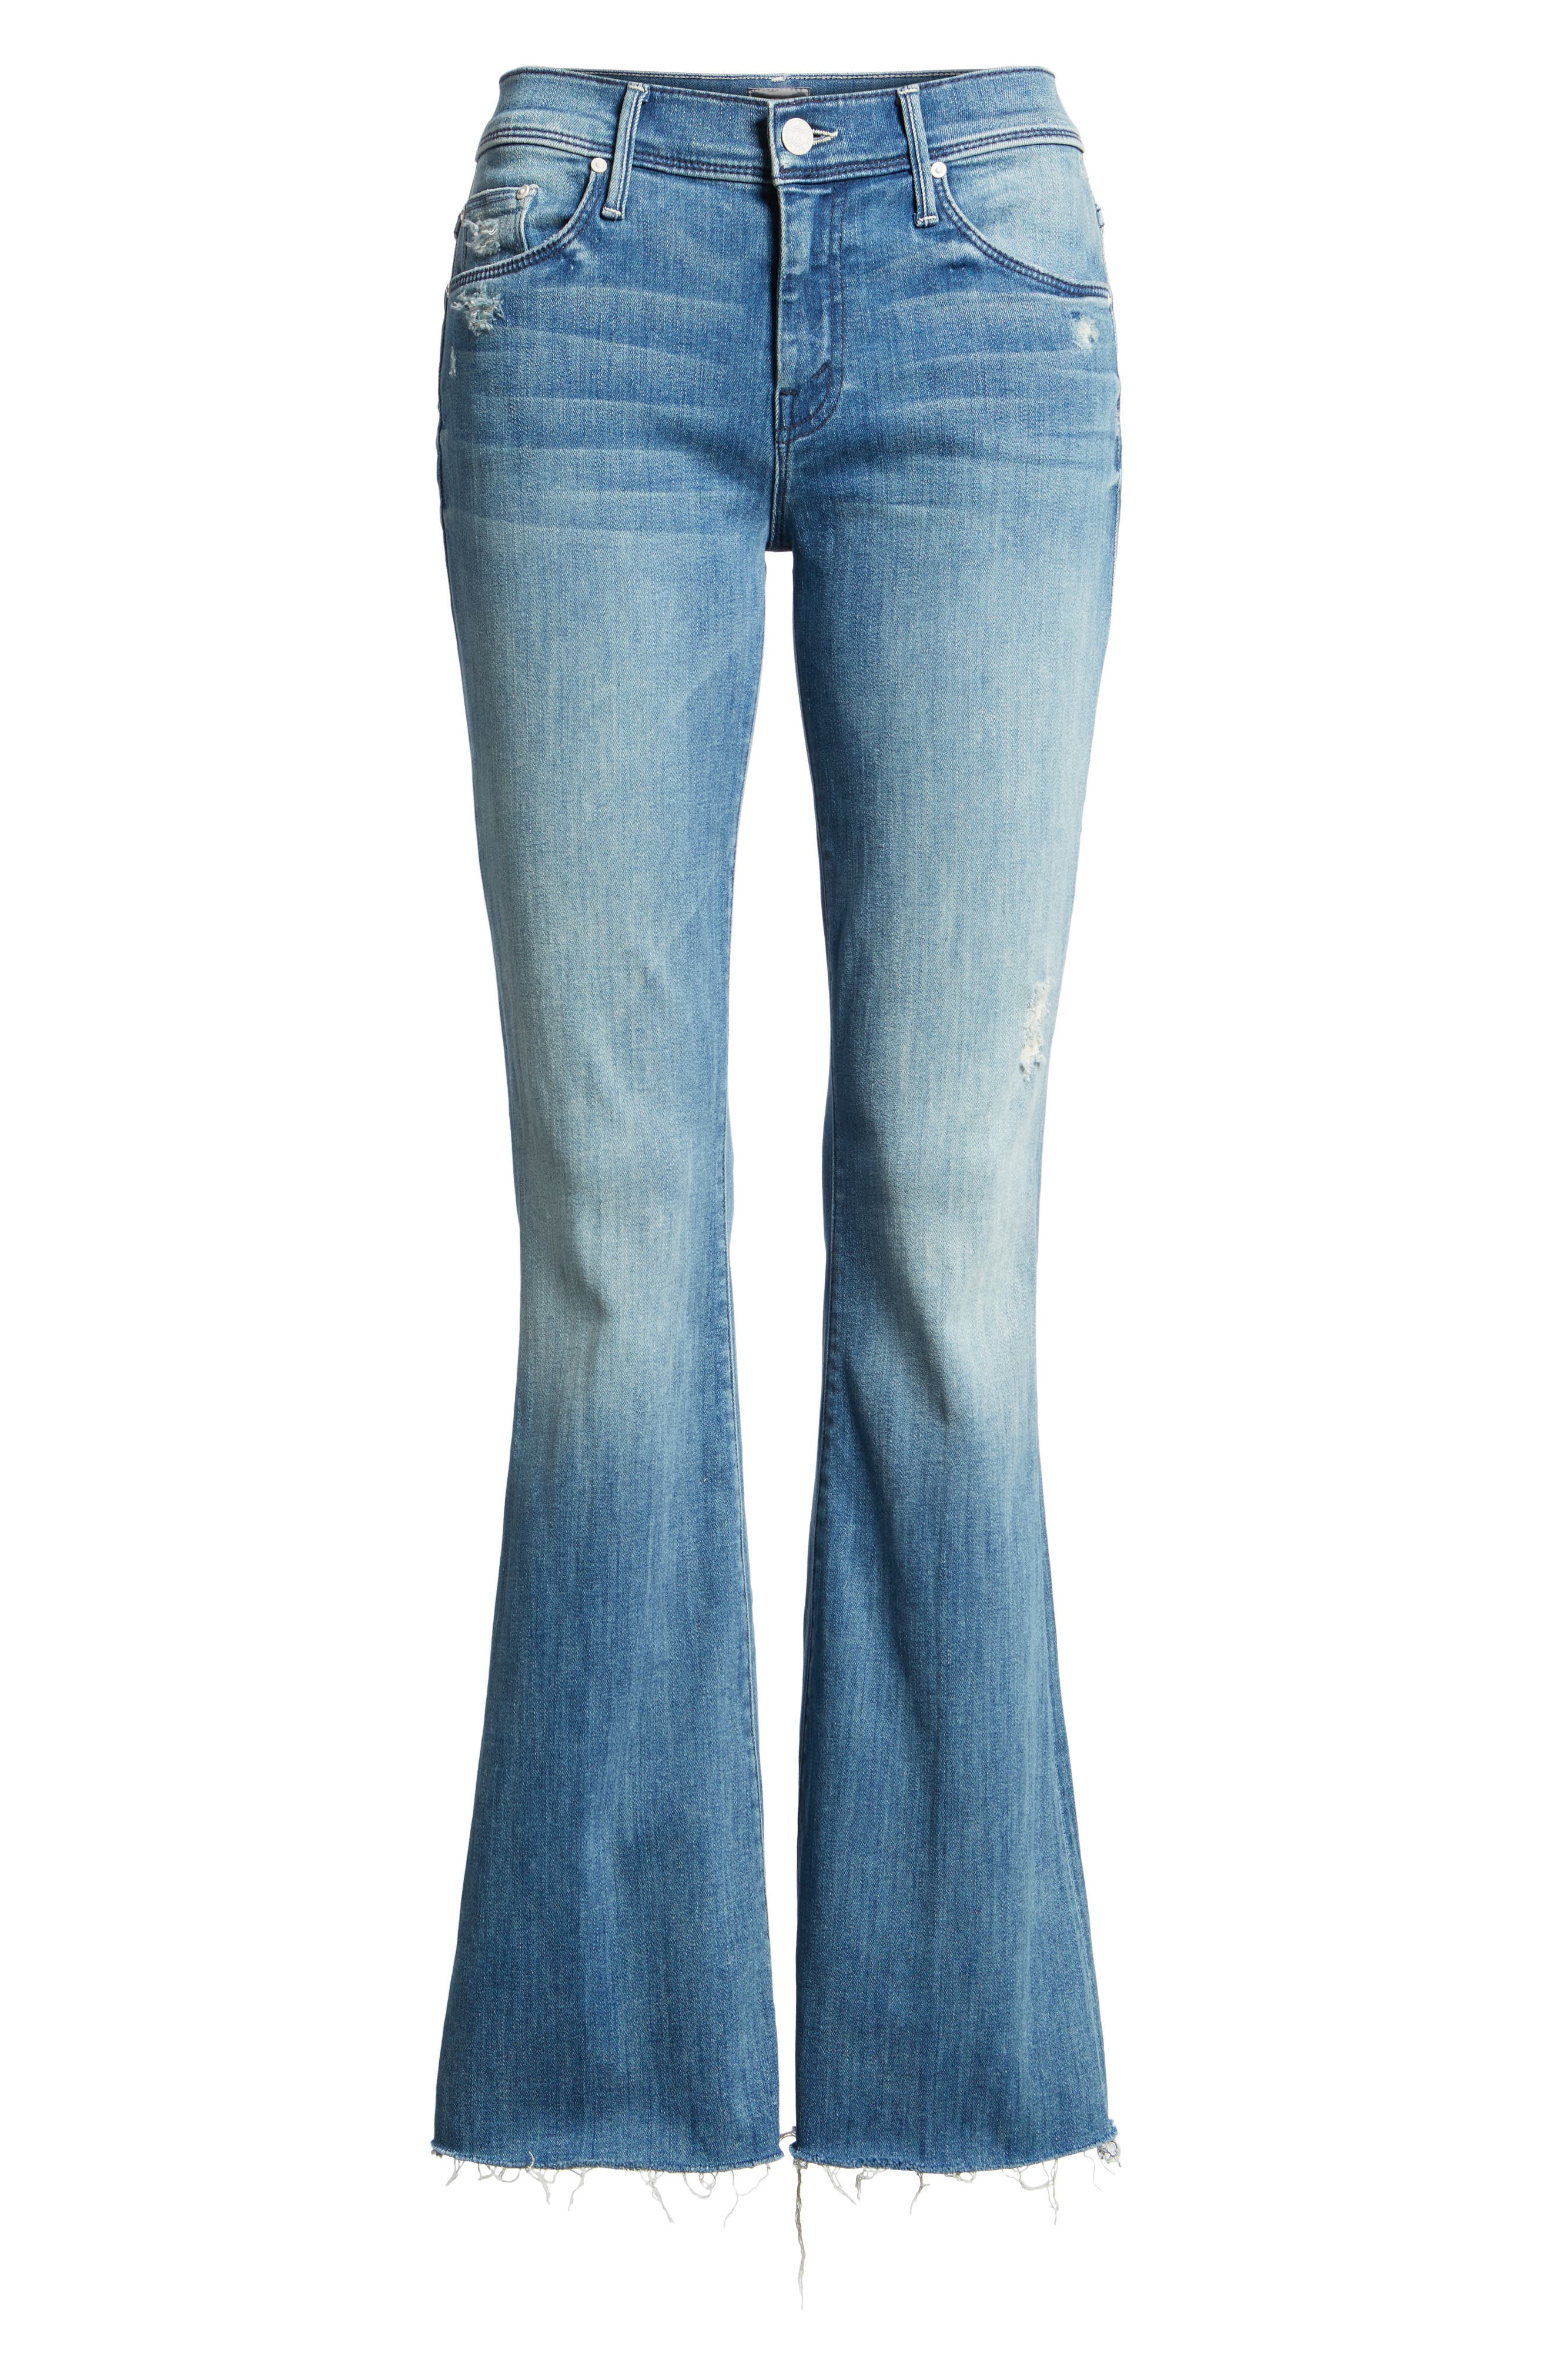 MOTHER, Raw Hem Flare Jeans, Main thumbnail 1, color, 420